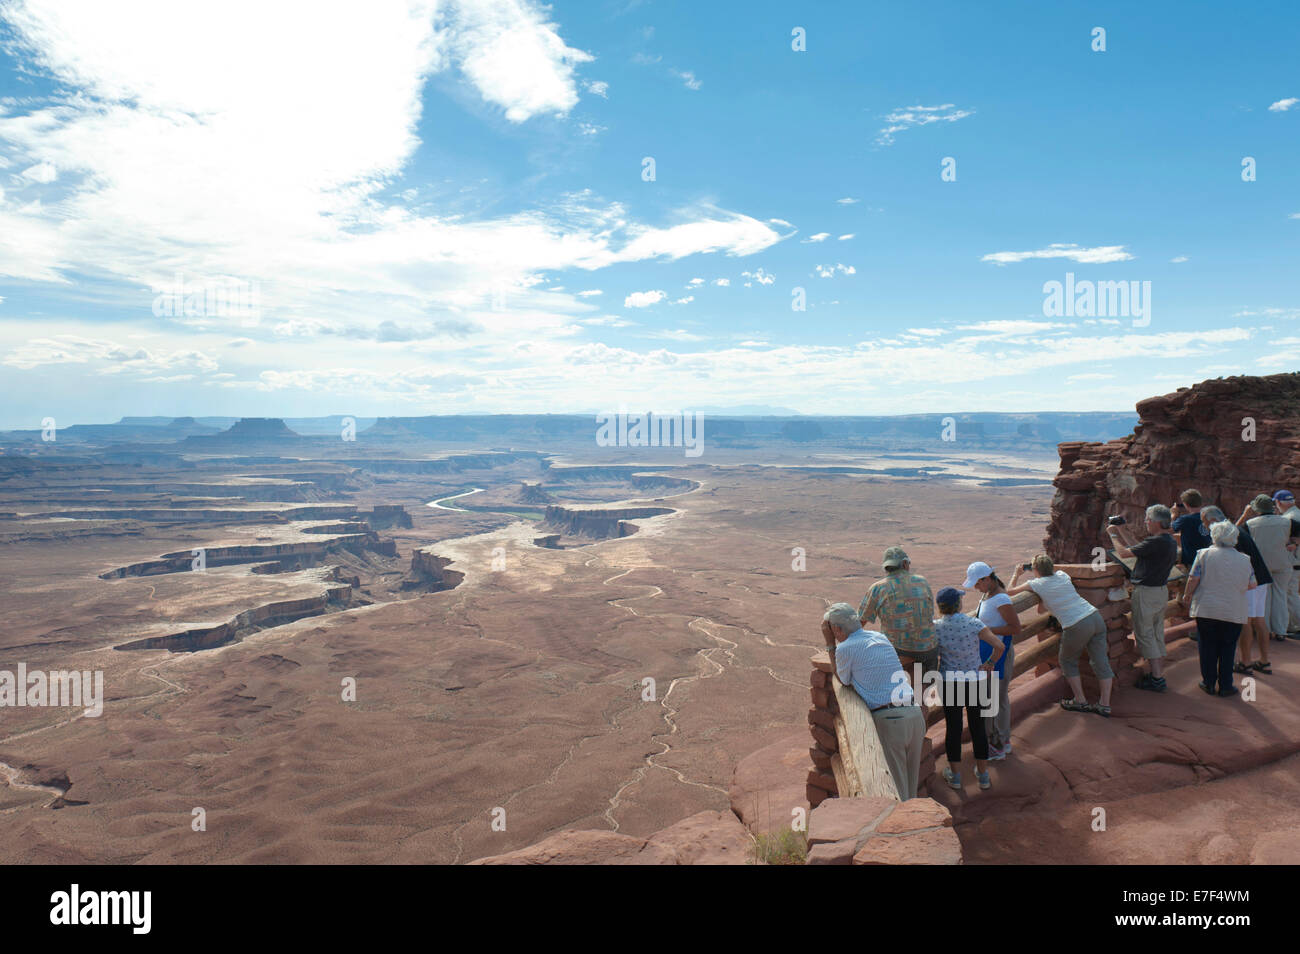 Erosion landscape, canyons, tourists at the Green River Overlook, Canyonlands National Park, Utah, USA - Stock Image